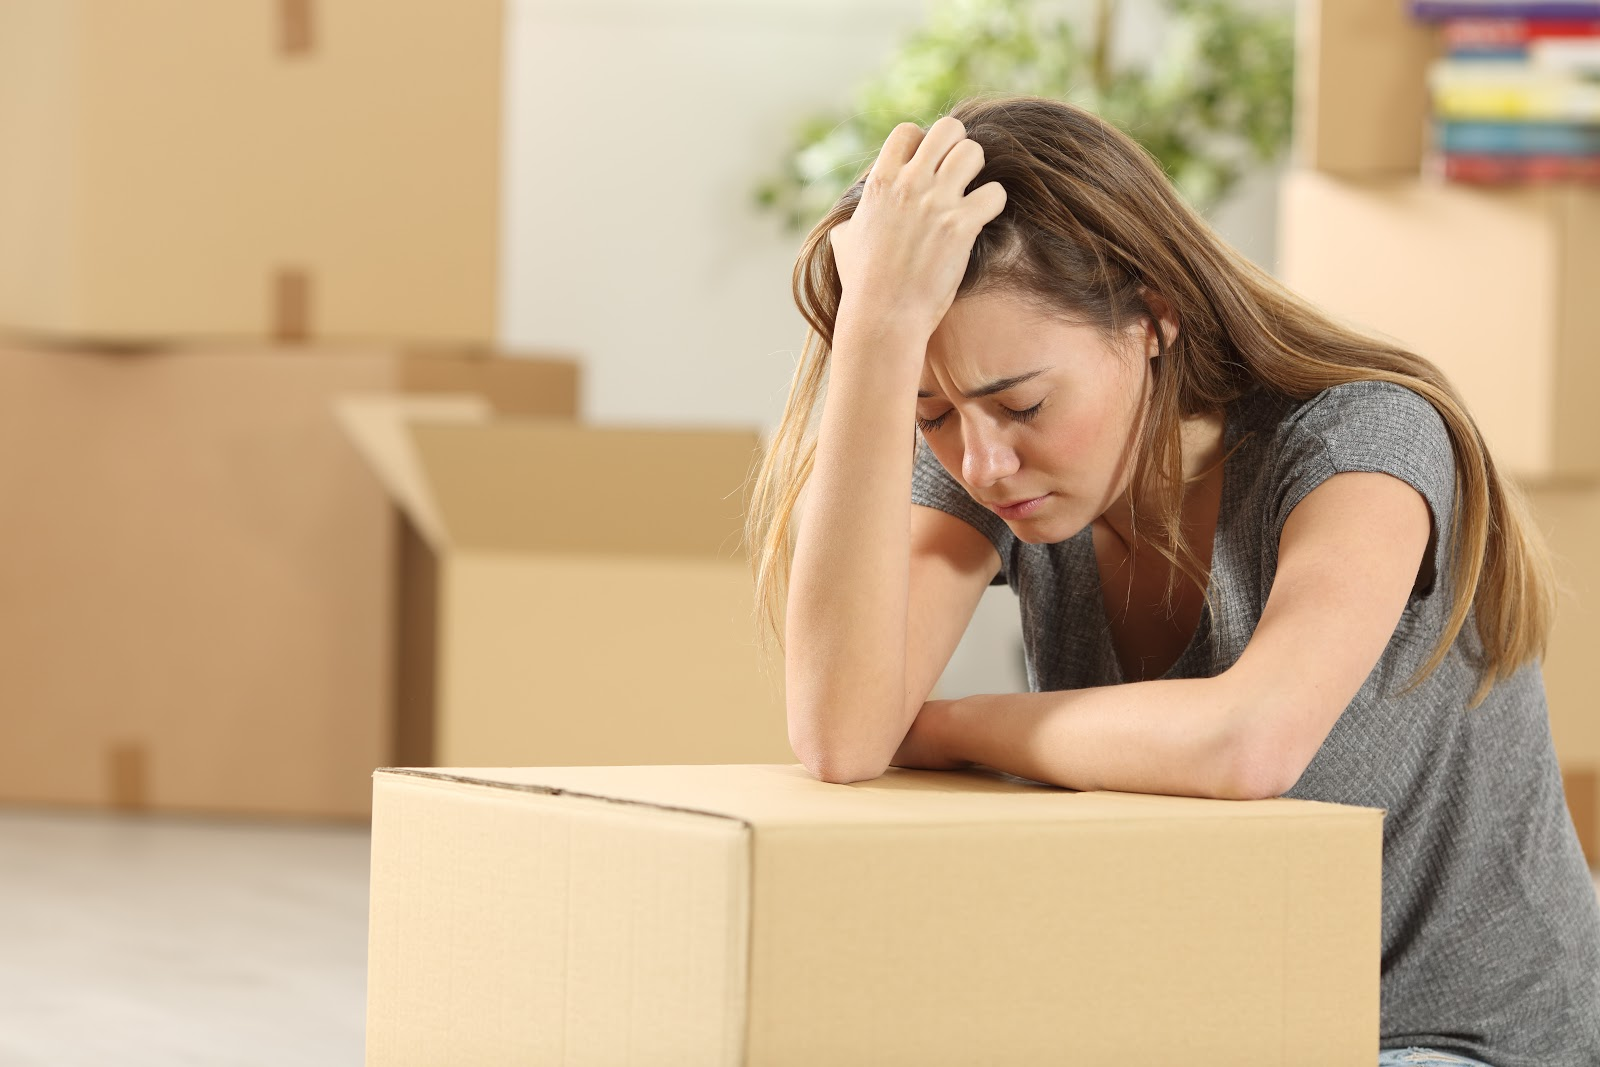 A woman with her eyes closed looking very stressed leaning on a moving box